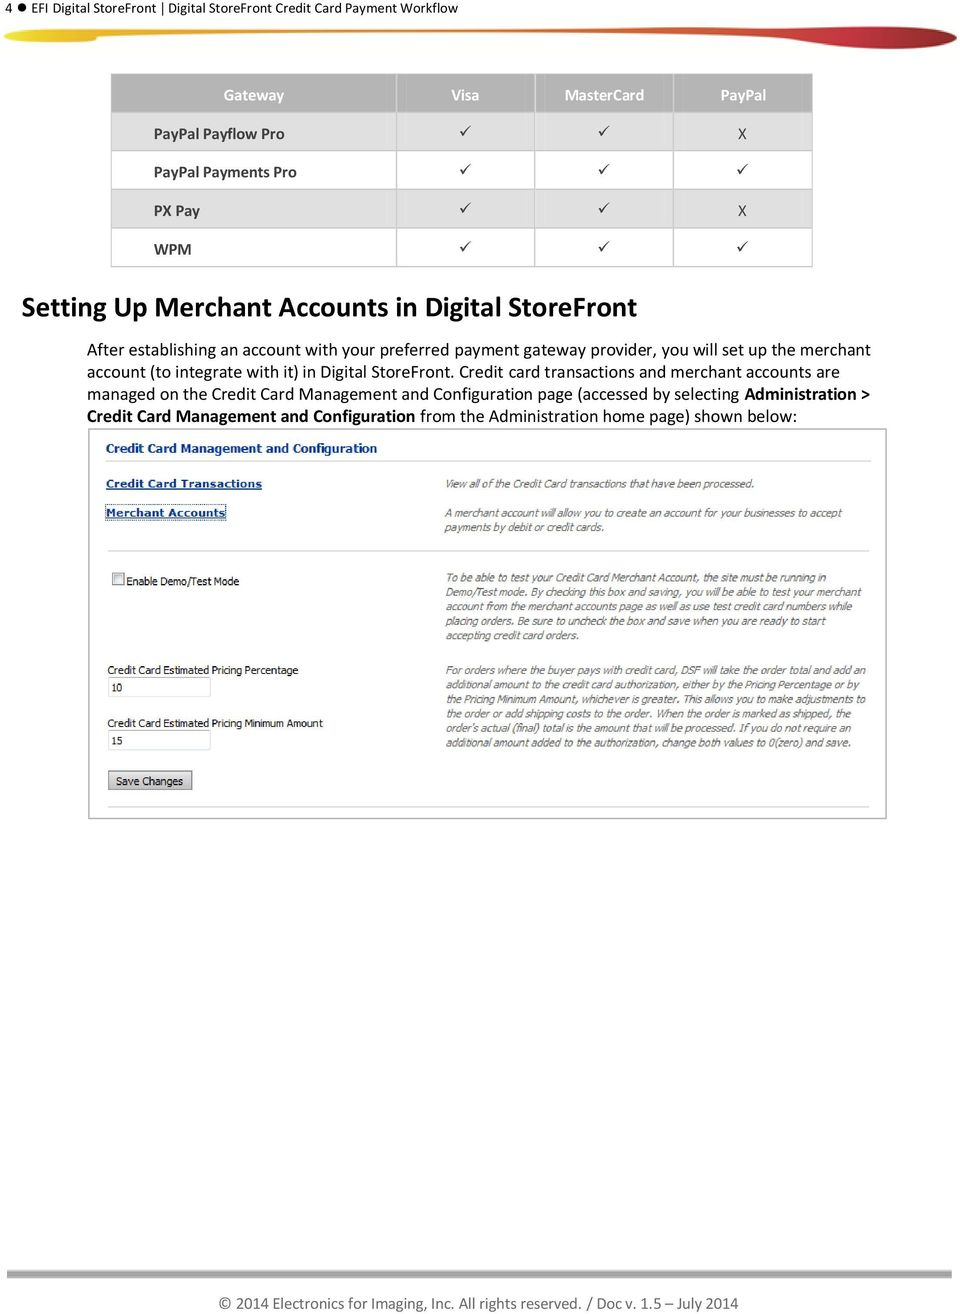 the merchant account (to integrate with it) in Digital StoreFront.